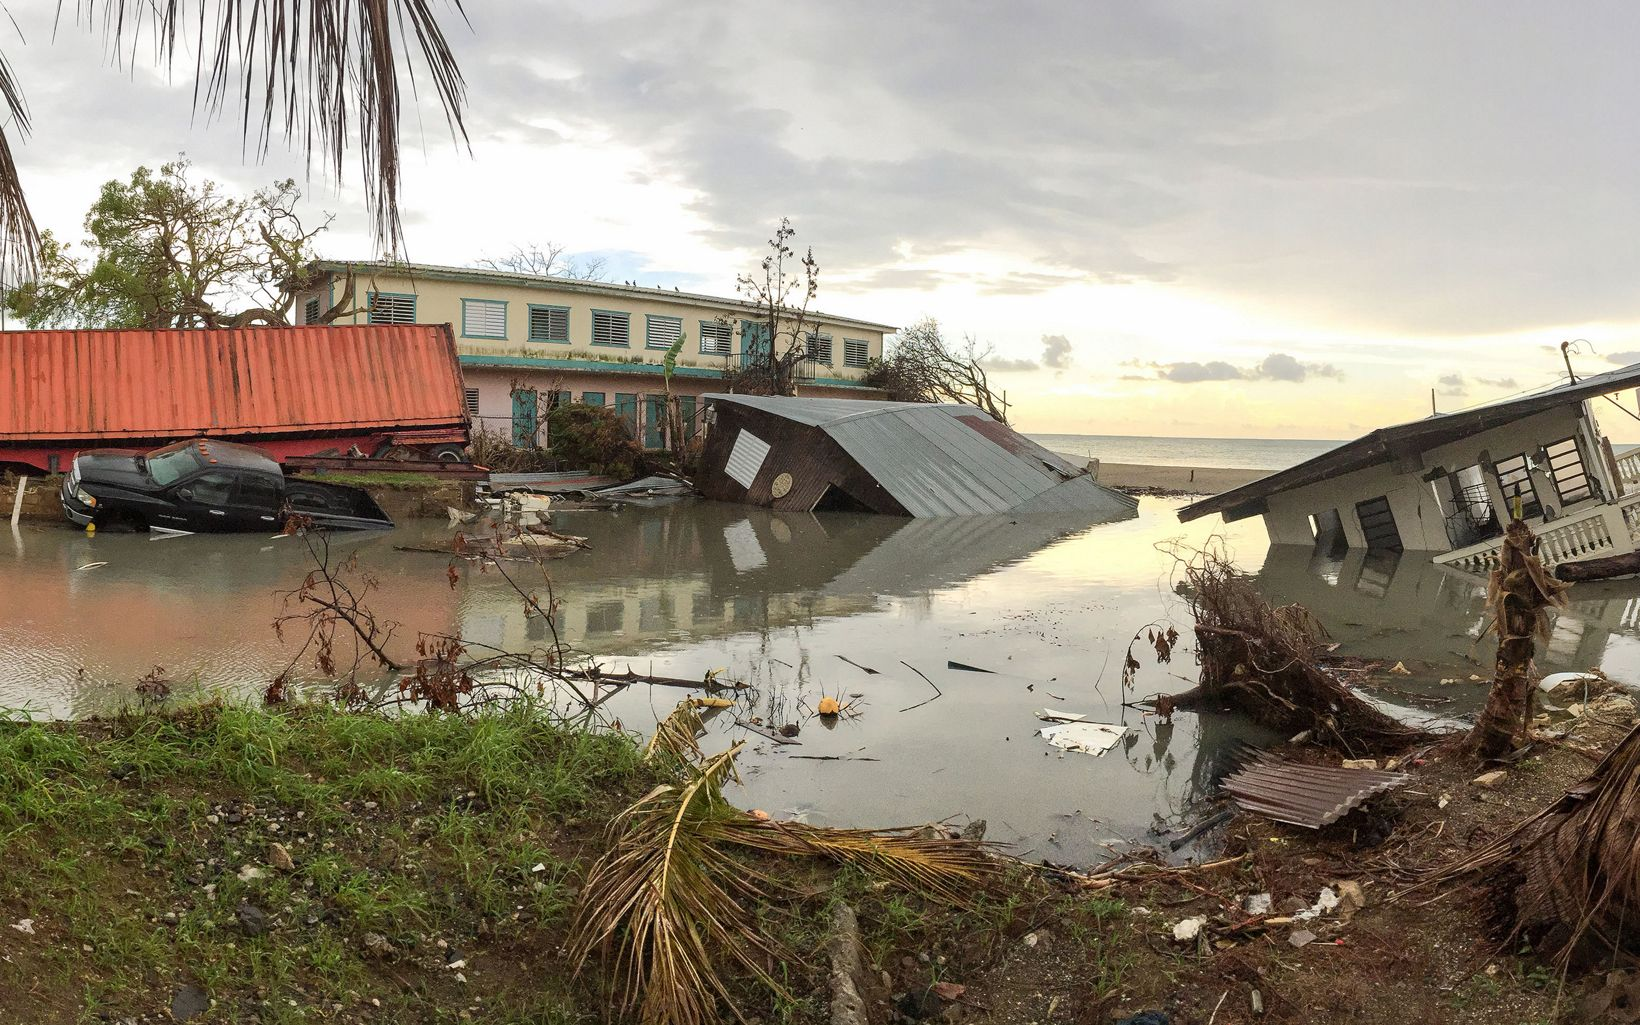 Damaged homes in Puerto Rico sink in elevated waters after Hurricane Maria.